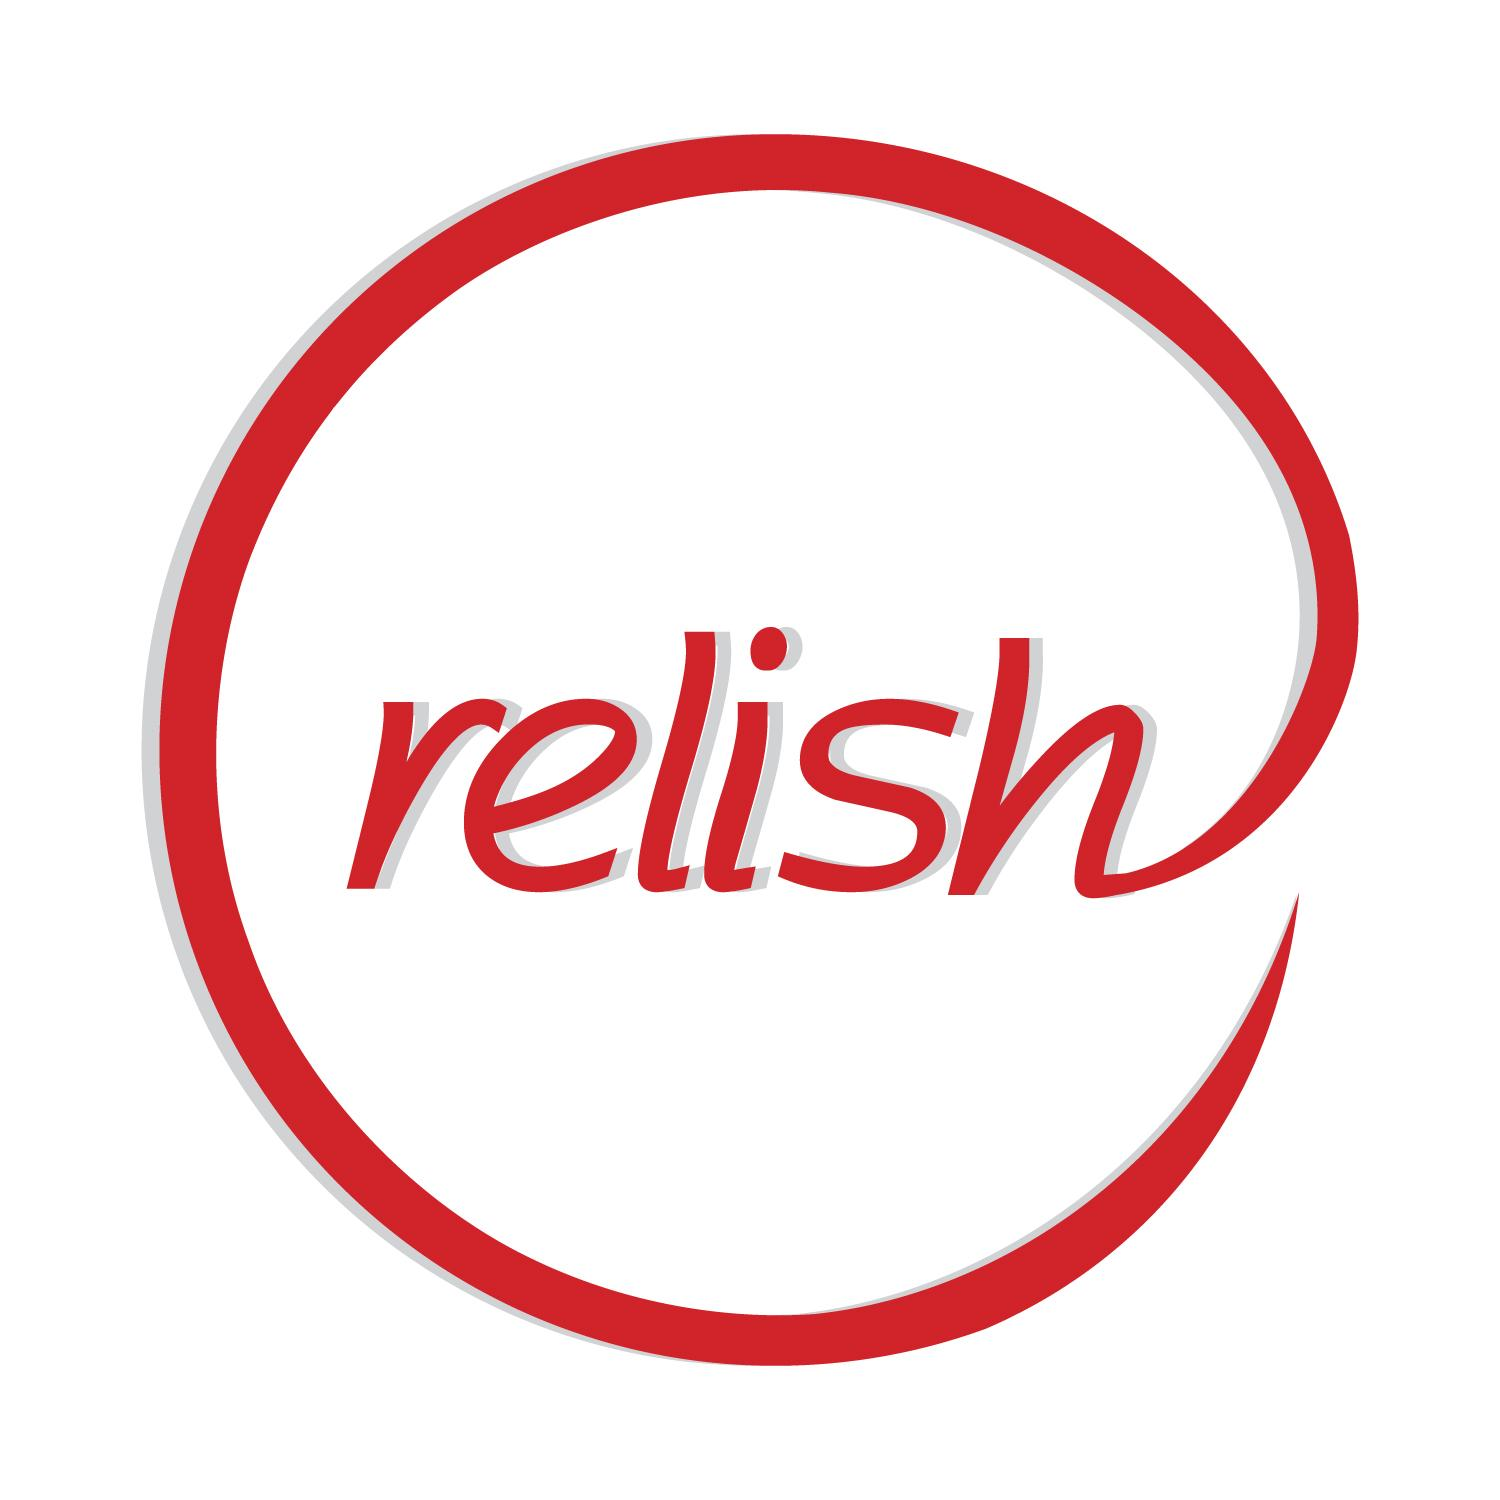 Relish Speed Dating Minneapolis | Friday Night Event | Who Do You Relish?